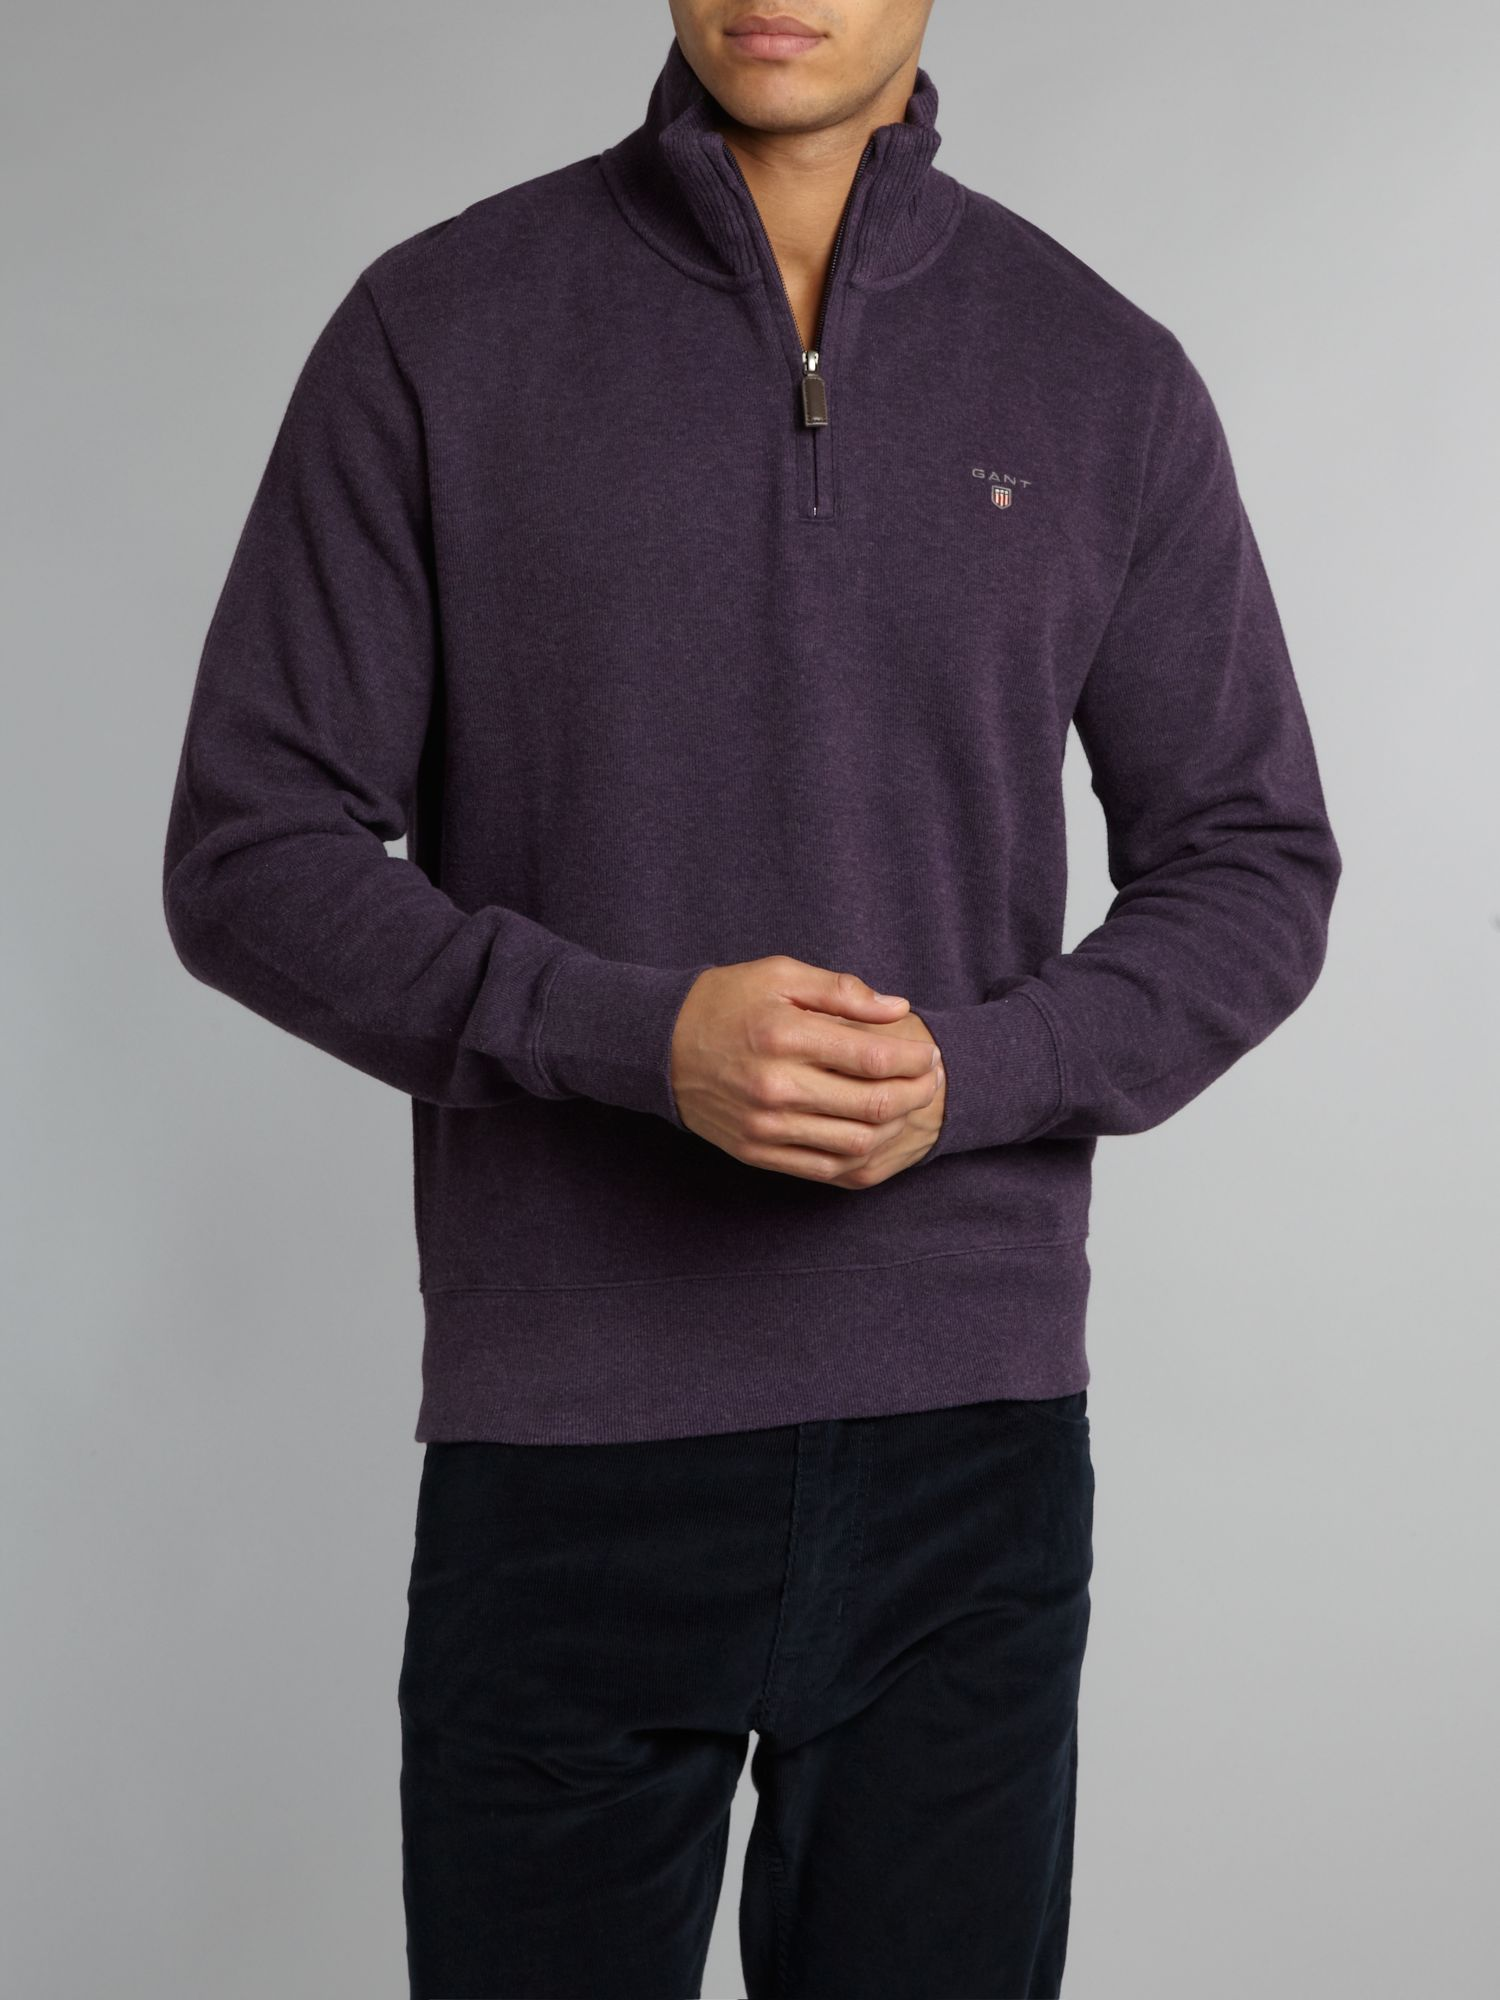 Sacker ribbed half zip sweatshirt